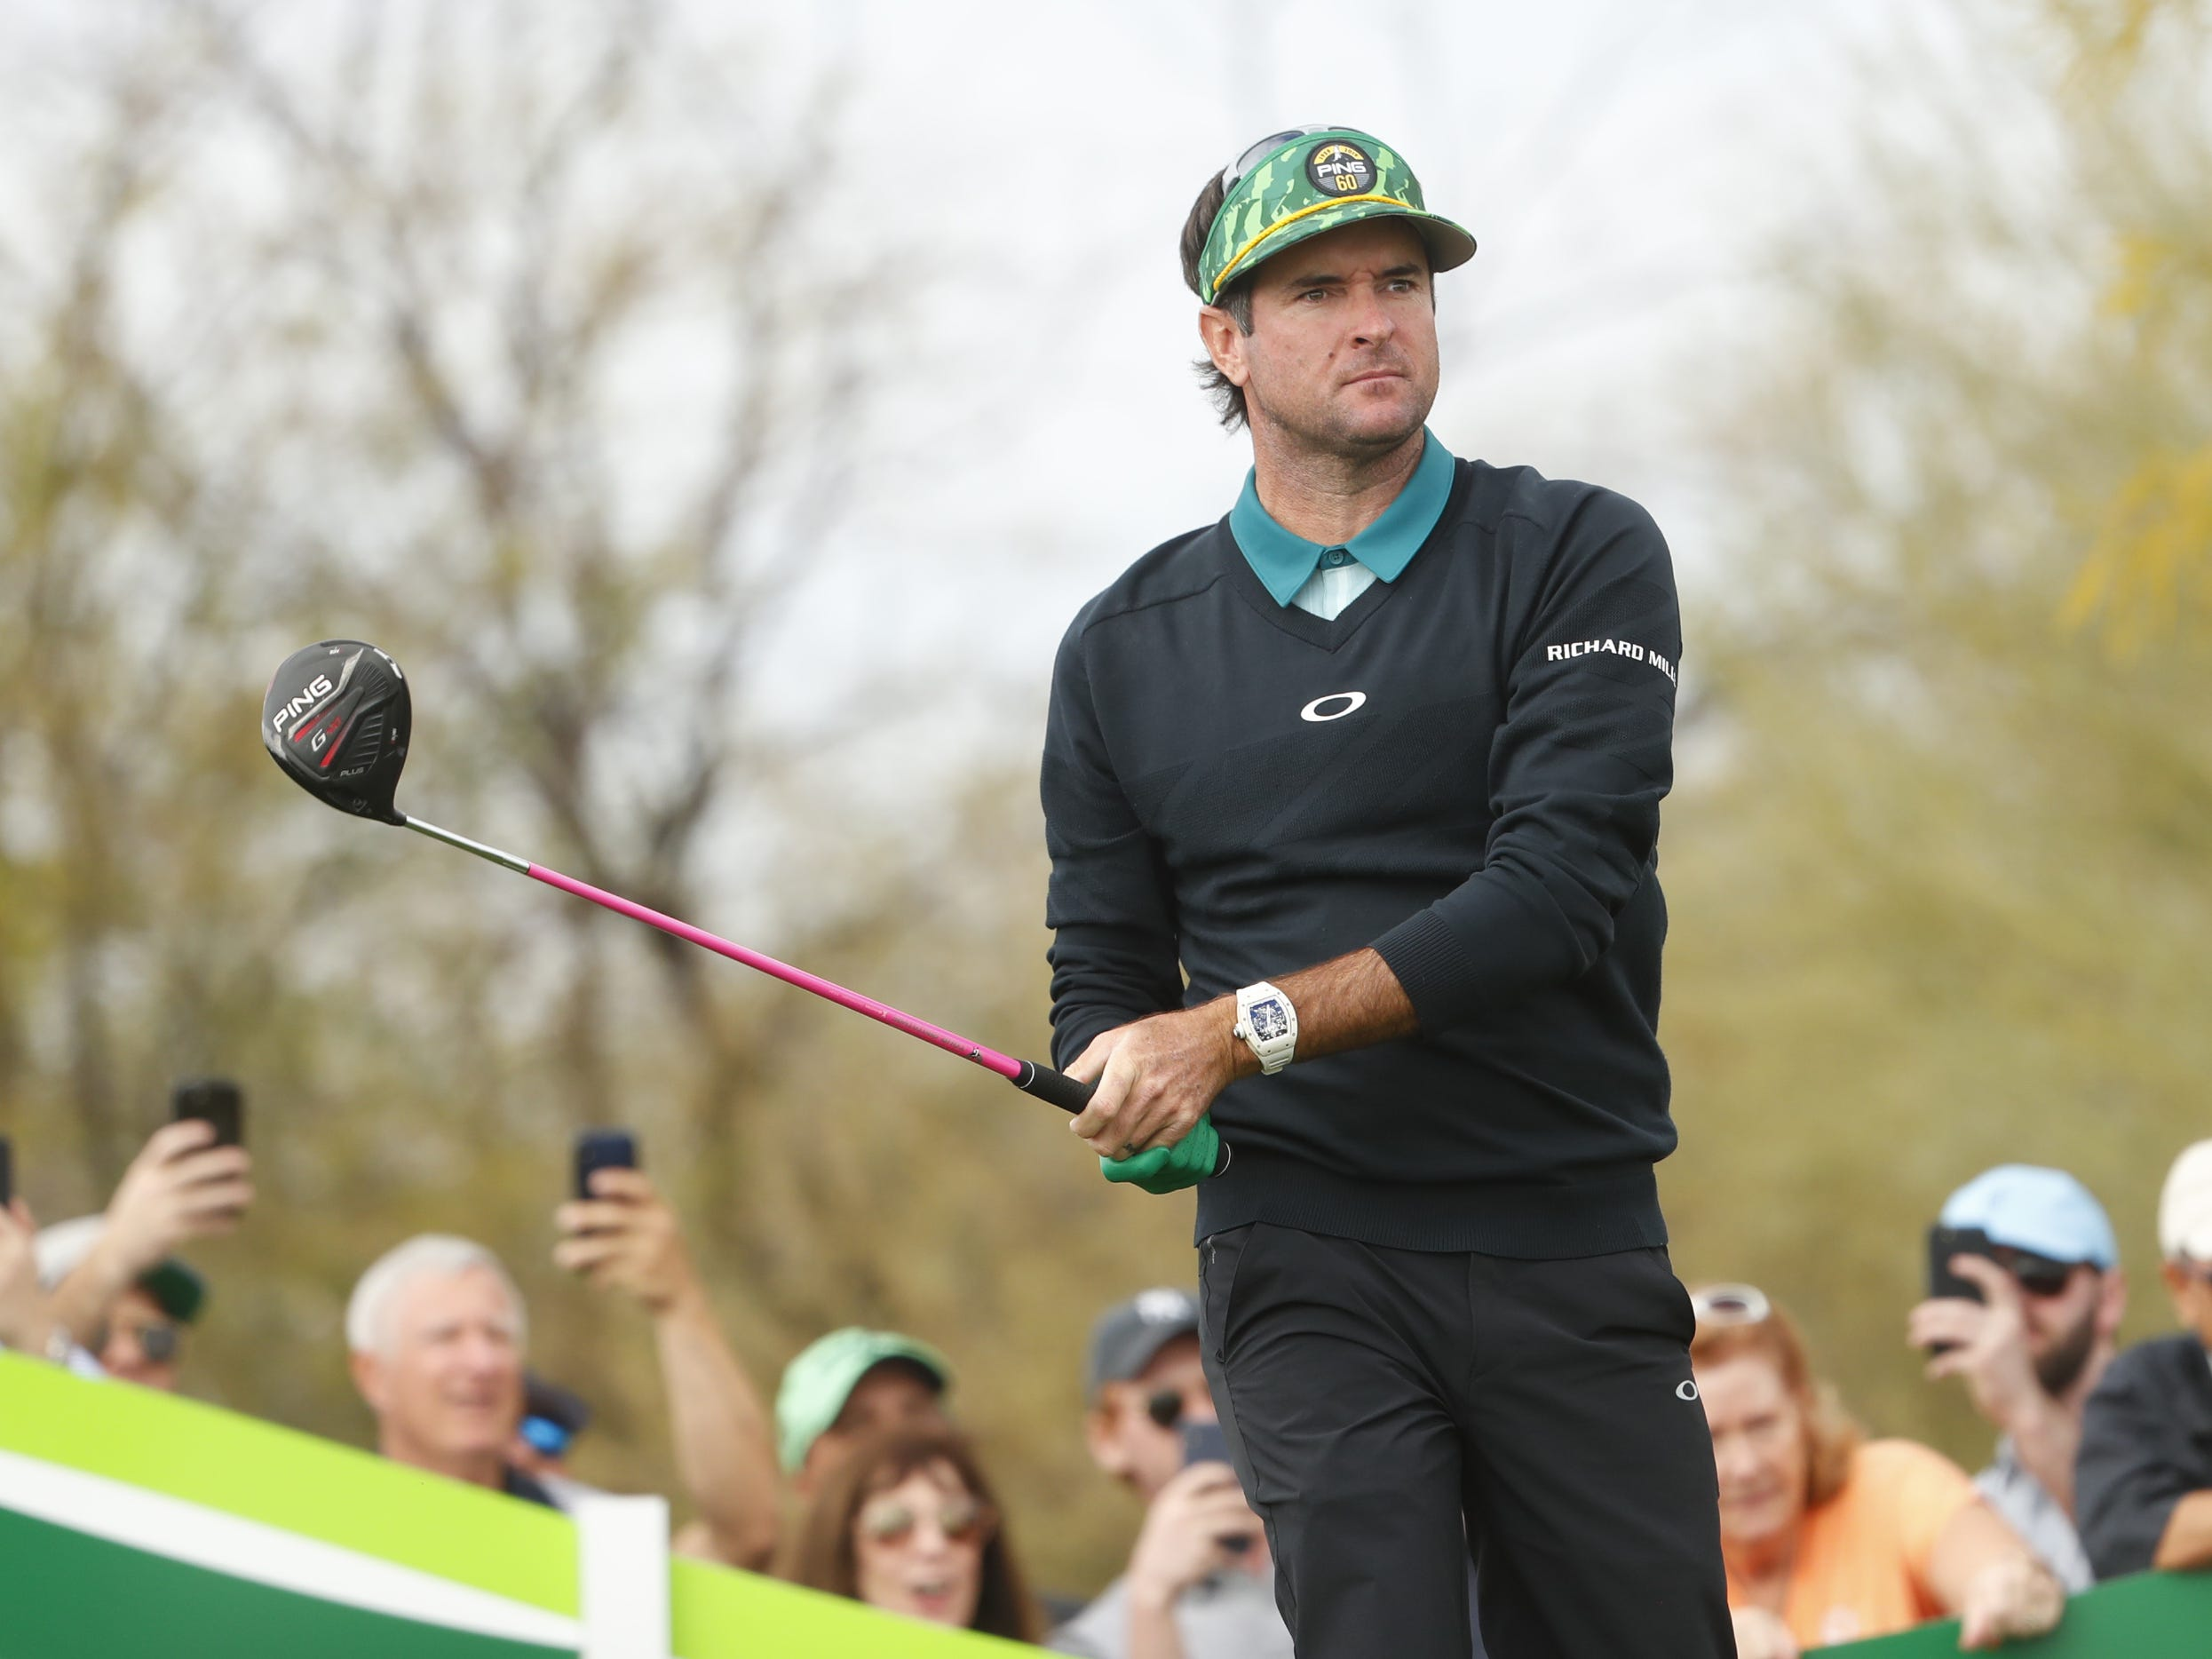 Bubba Watson tees off on the 8th hole during the third round of the Waste Management Phoenix Open at TPC Scottsdale in Scottsdale, Ariz. on February 2, 2019.